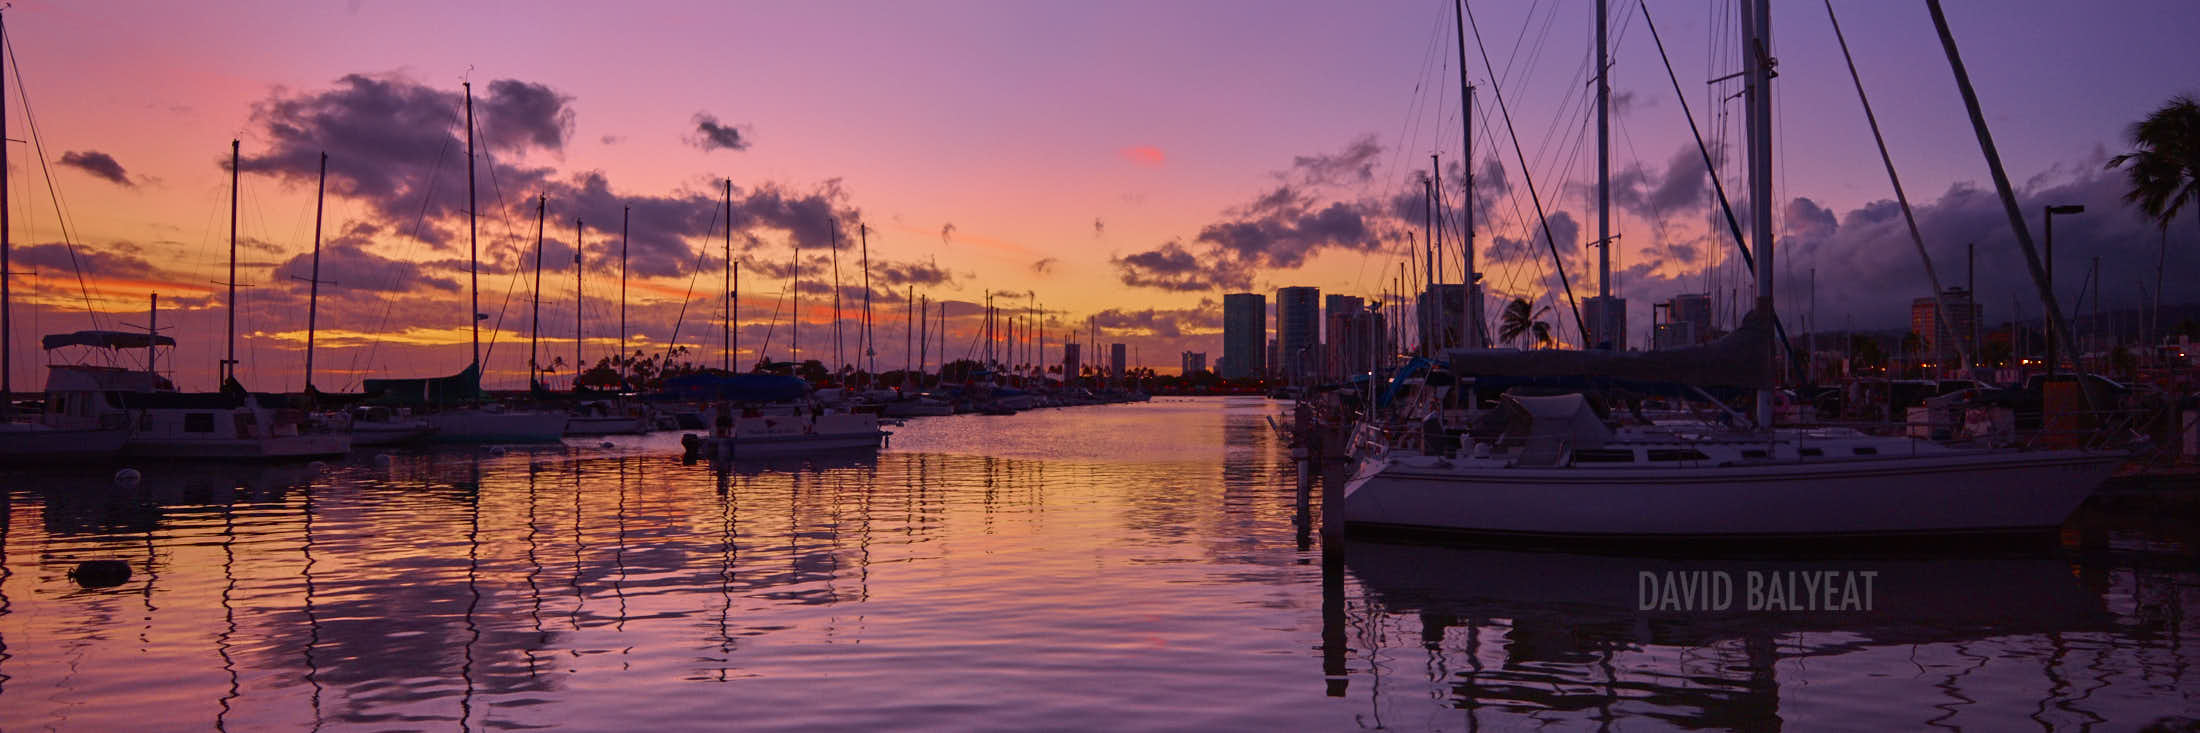 Honolulu Harbor sailboats sunset panoramic O'ahu Hawaii high-definition HD professional landscape photography